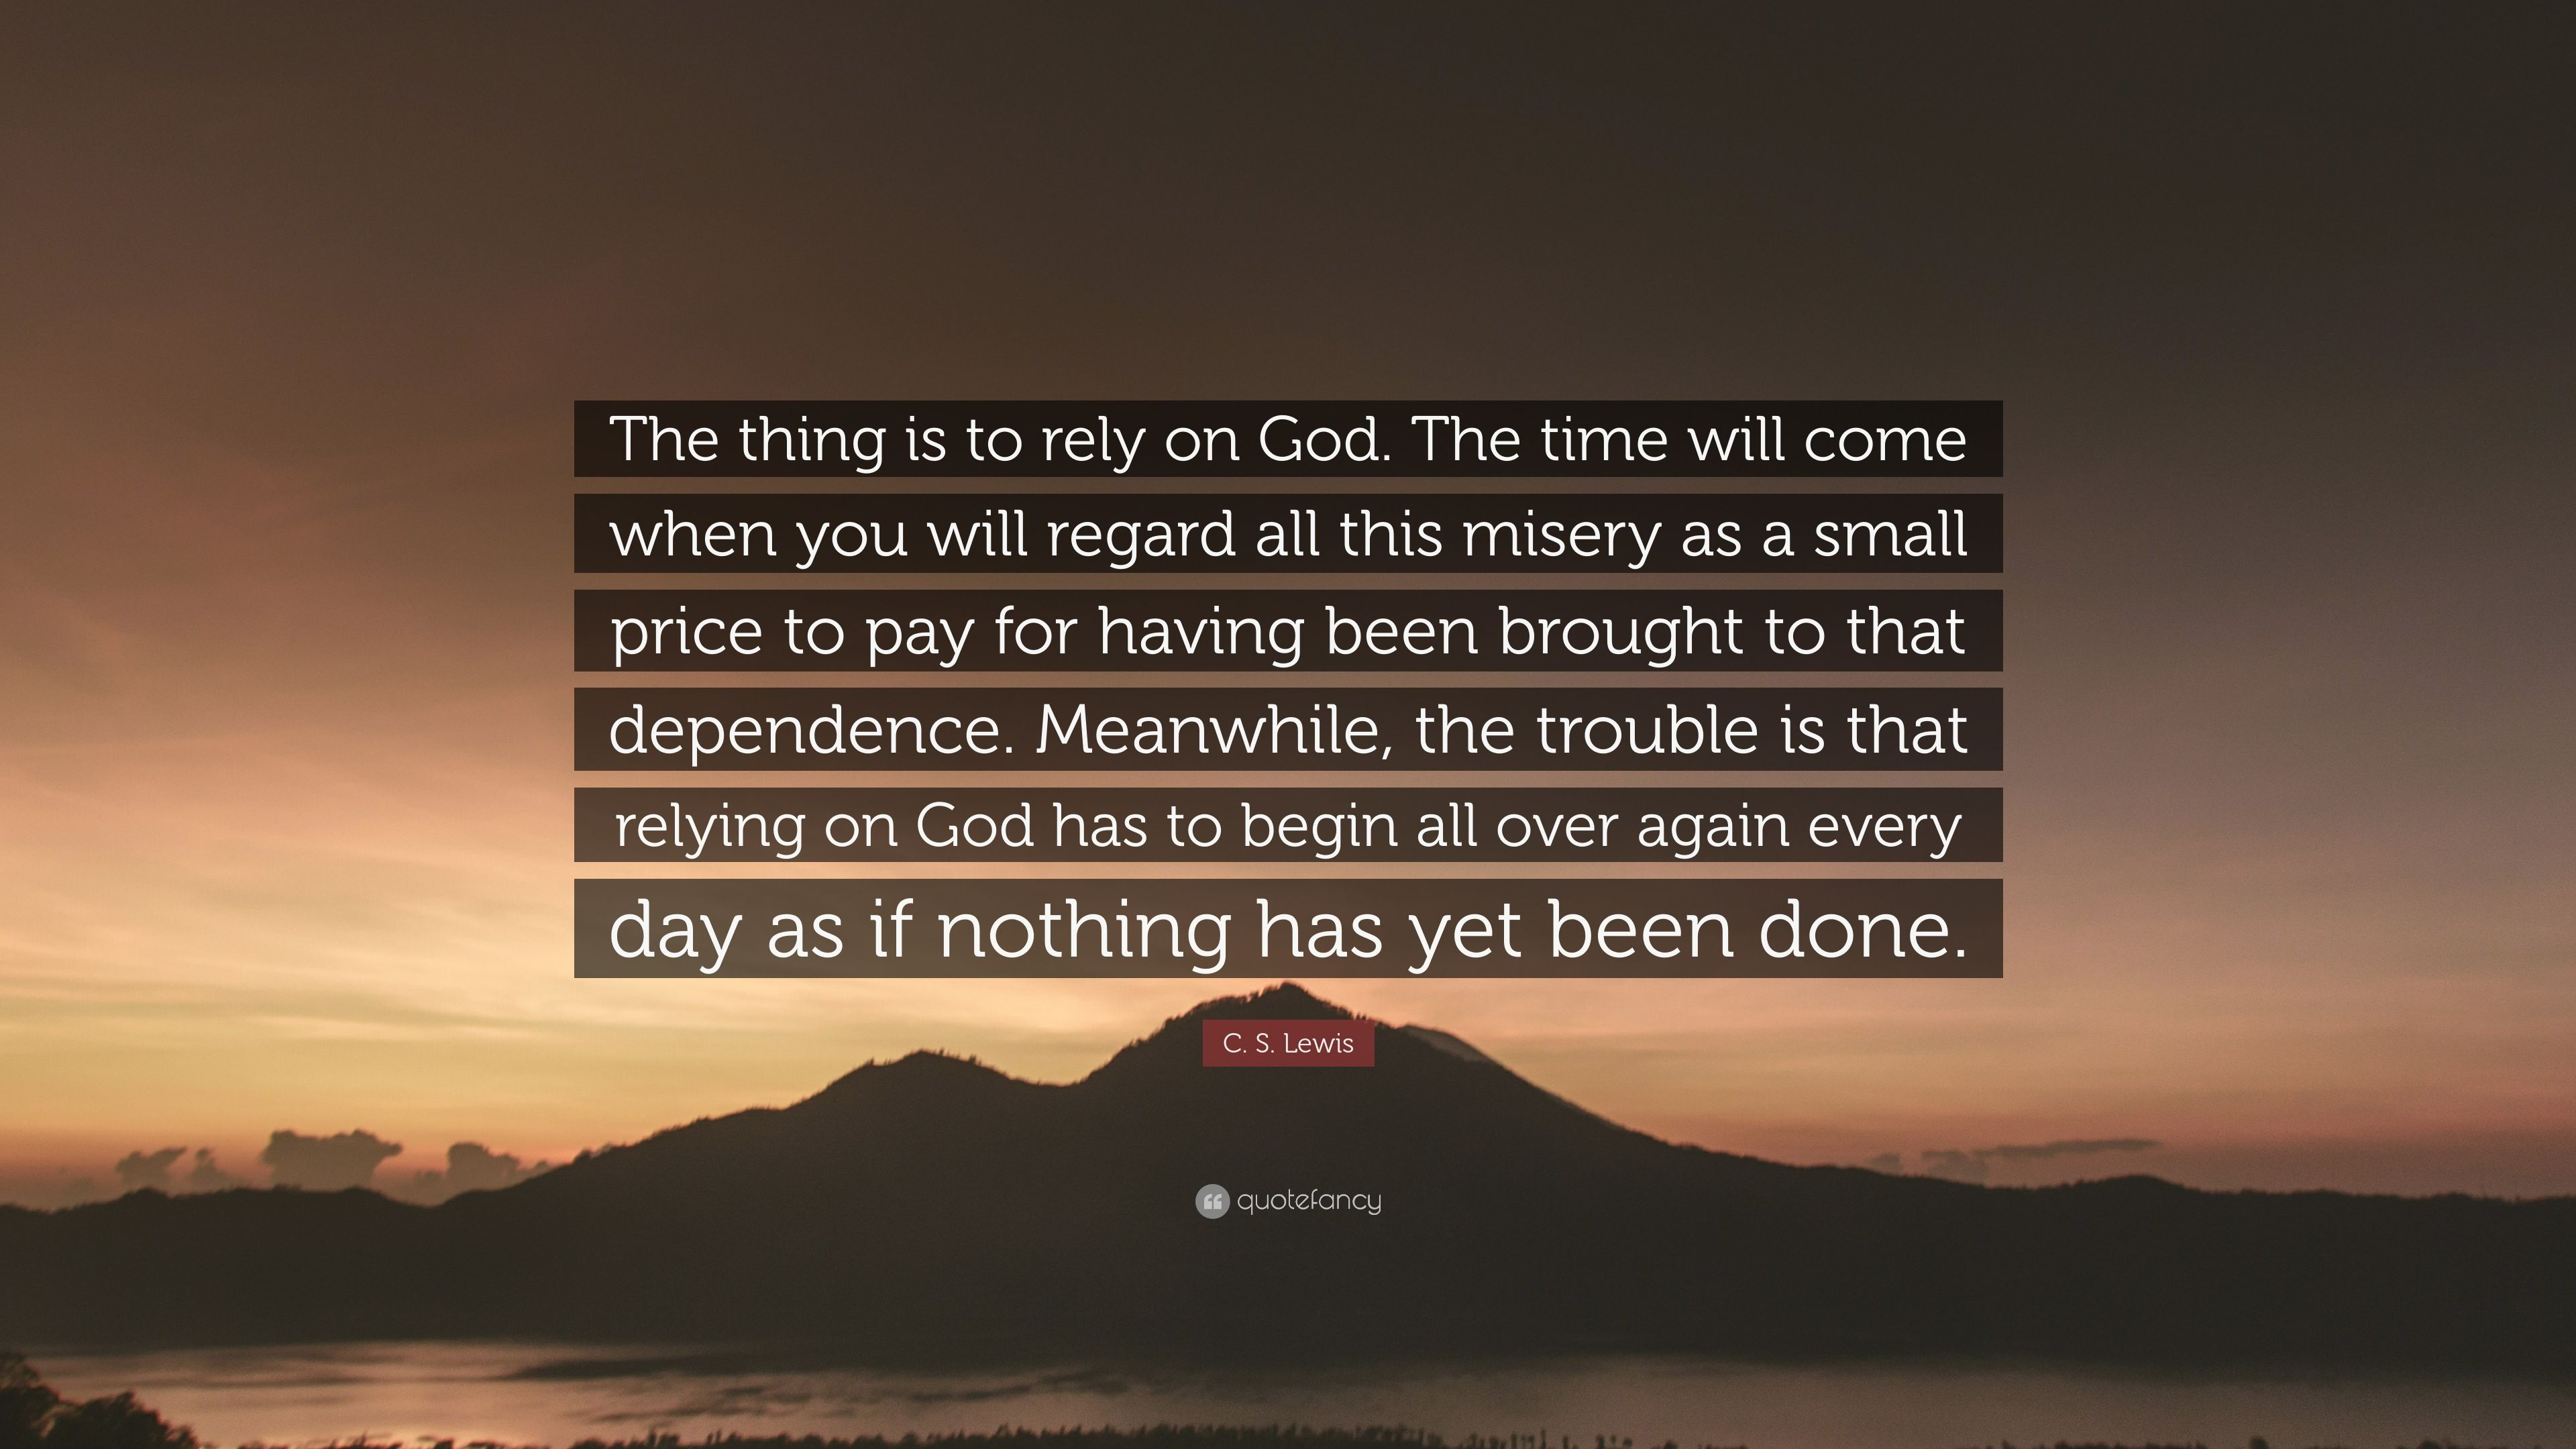 C S Lewis Quote The Thing Is To Rely On God The Time Will Come